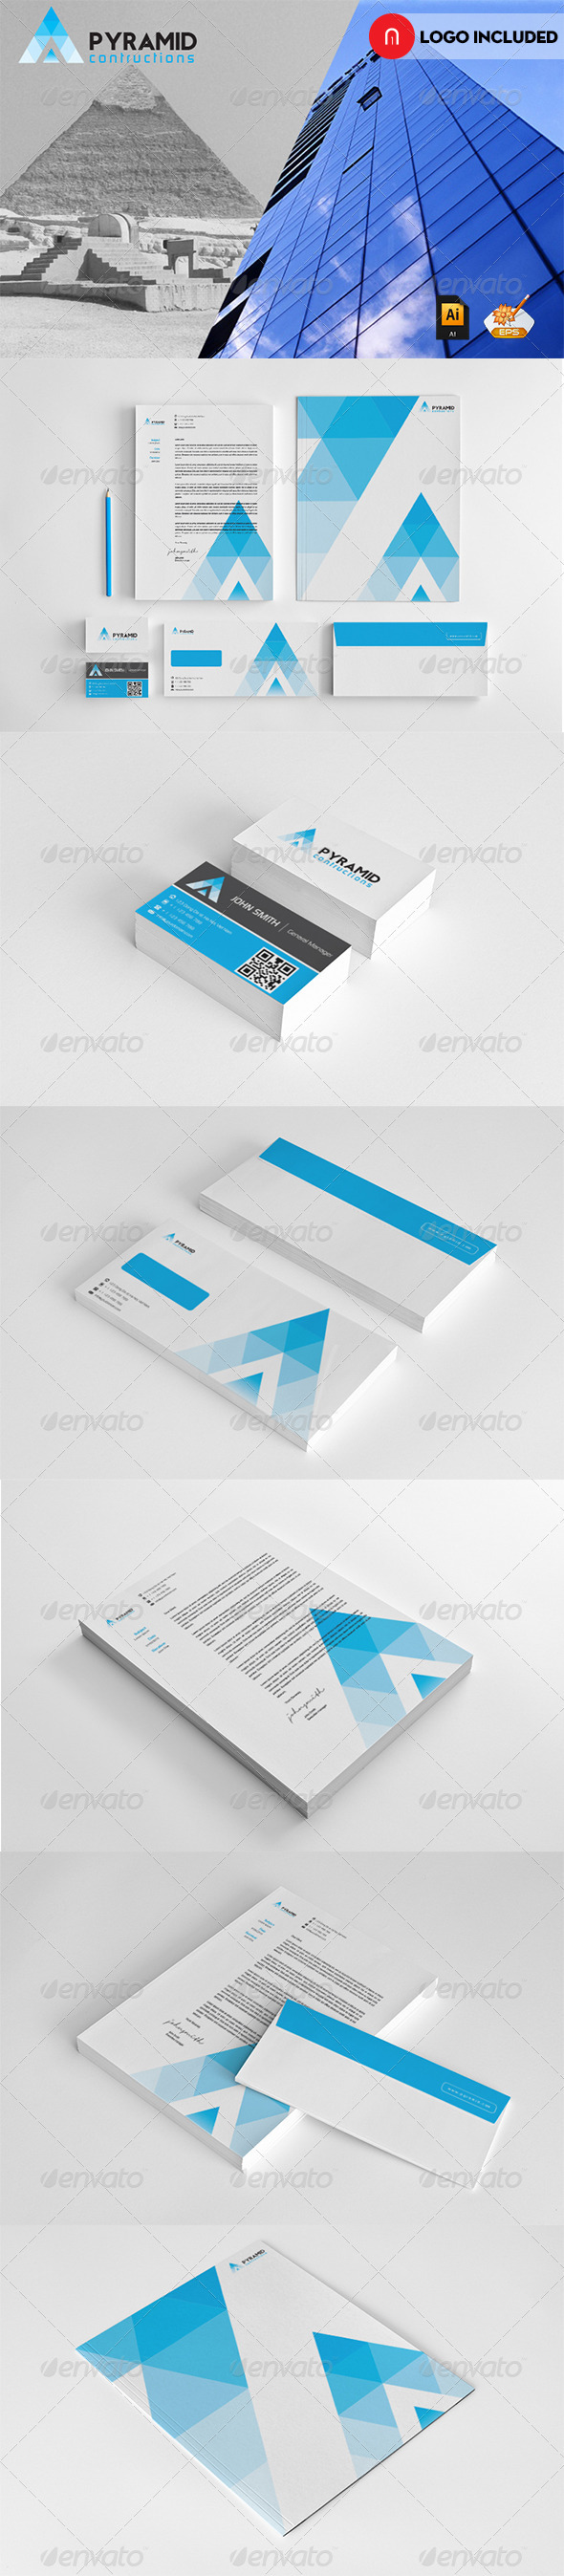 Corporate Startioney Pyramid Contruction - Stationery Print Templates